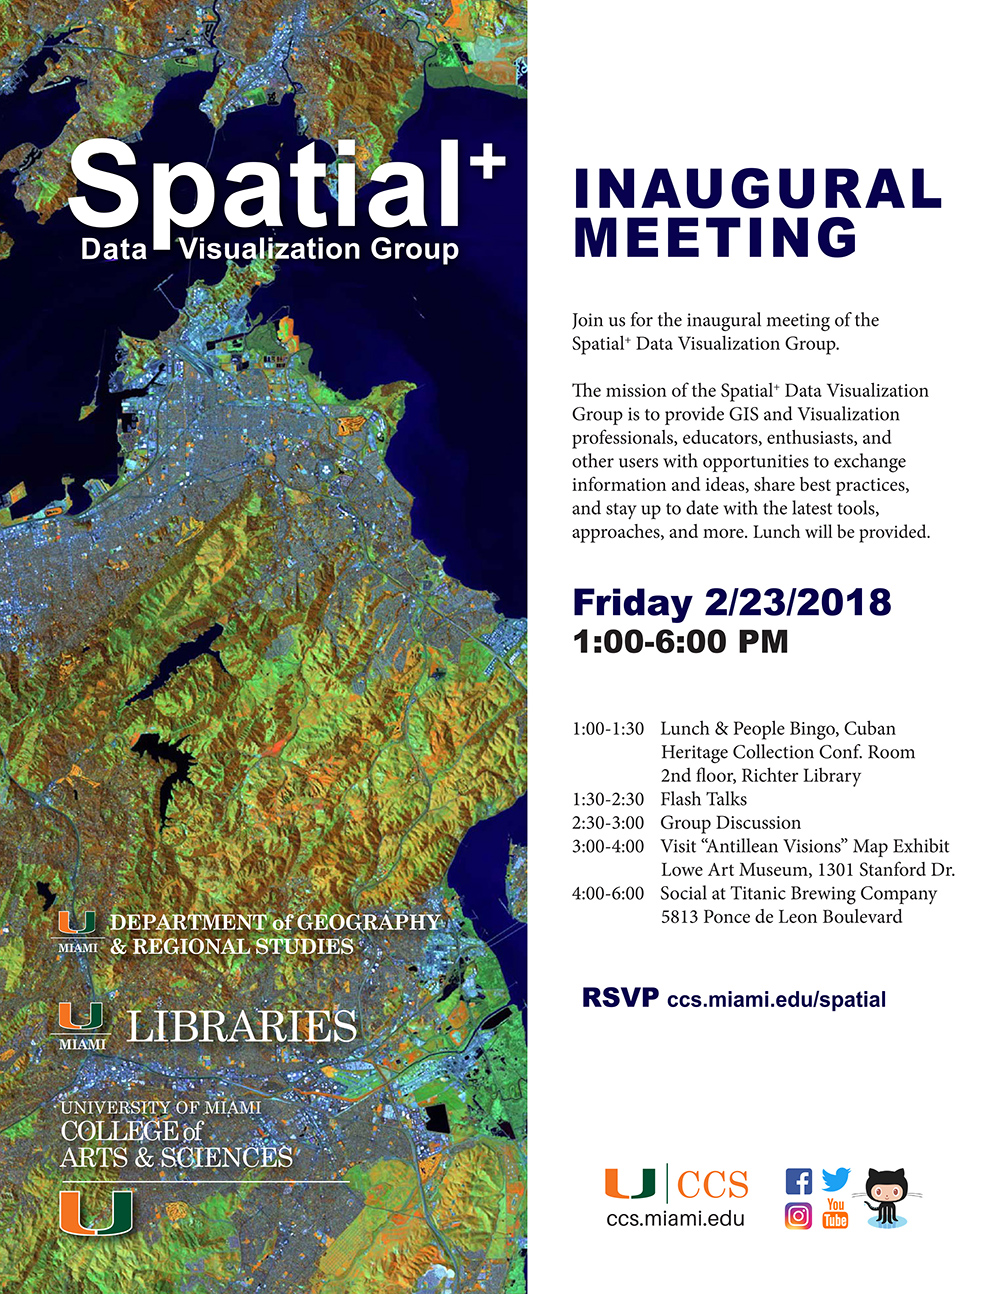 University of Miami Center for Computational Science Spatial+ Data Visualization Inaugural Meeting Flyer